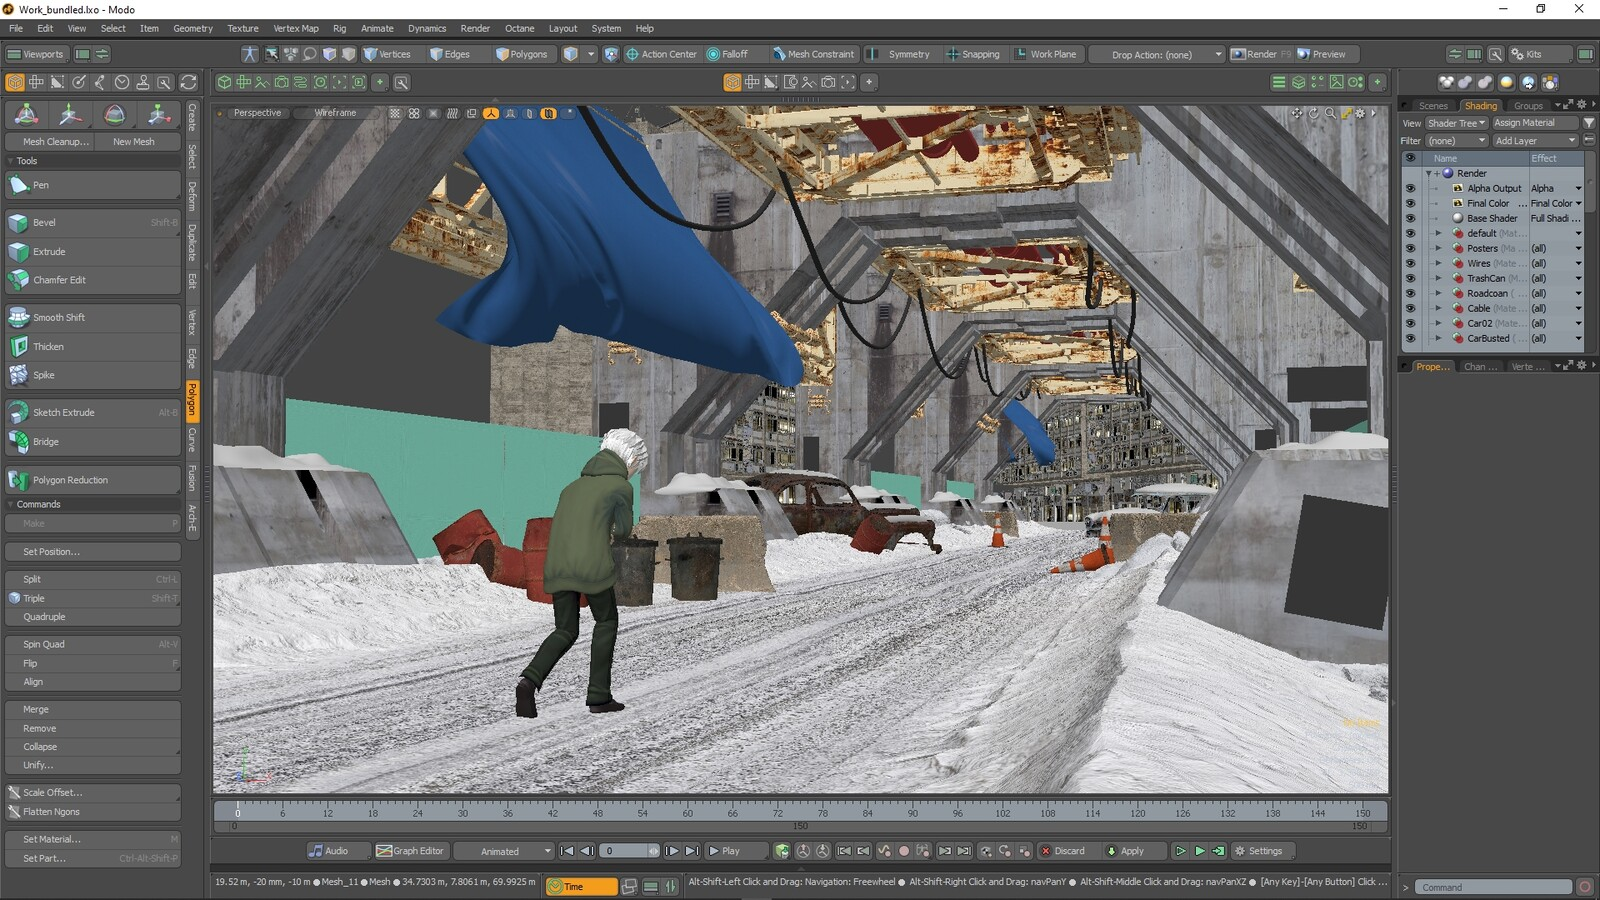 Here's what it looked like in Modo